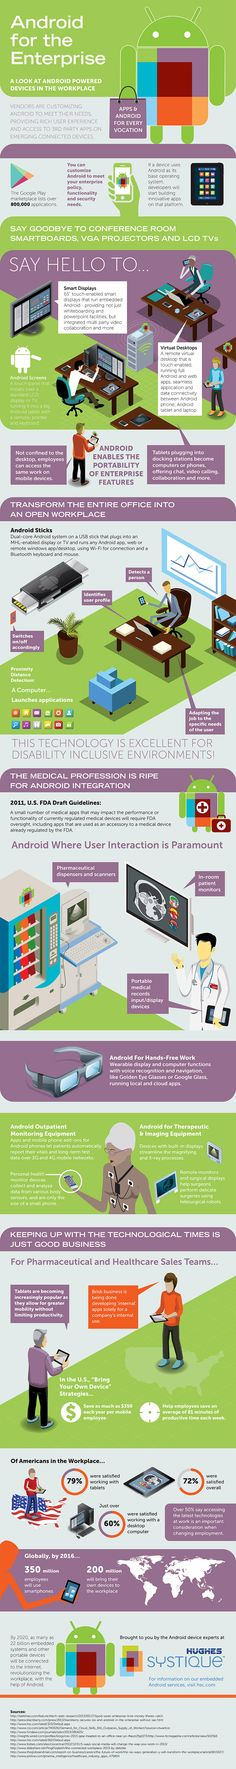 Say Hello to the Android Workplace! #infografía